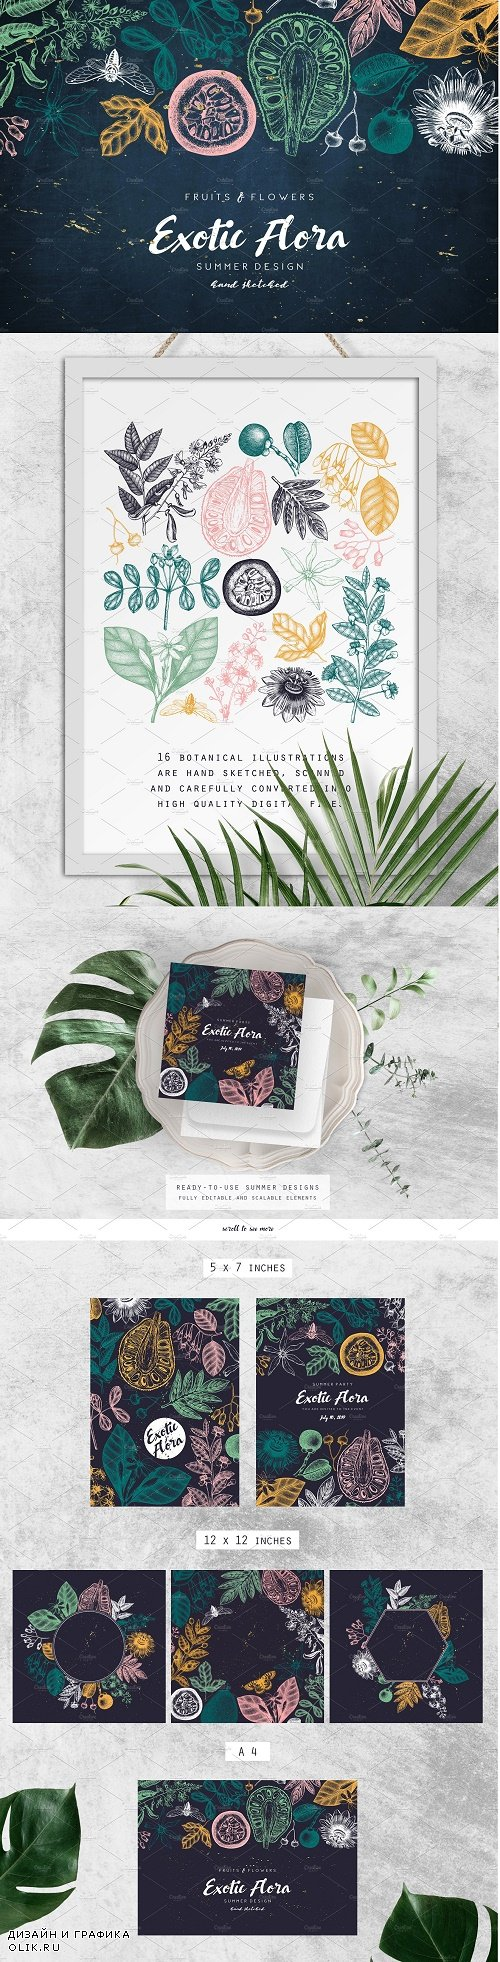 Exotic Plants Vector Collection - 3694923